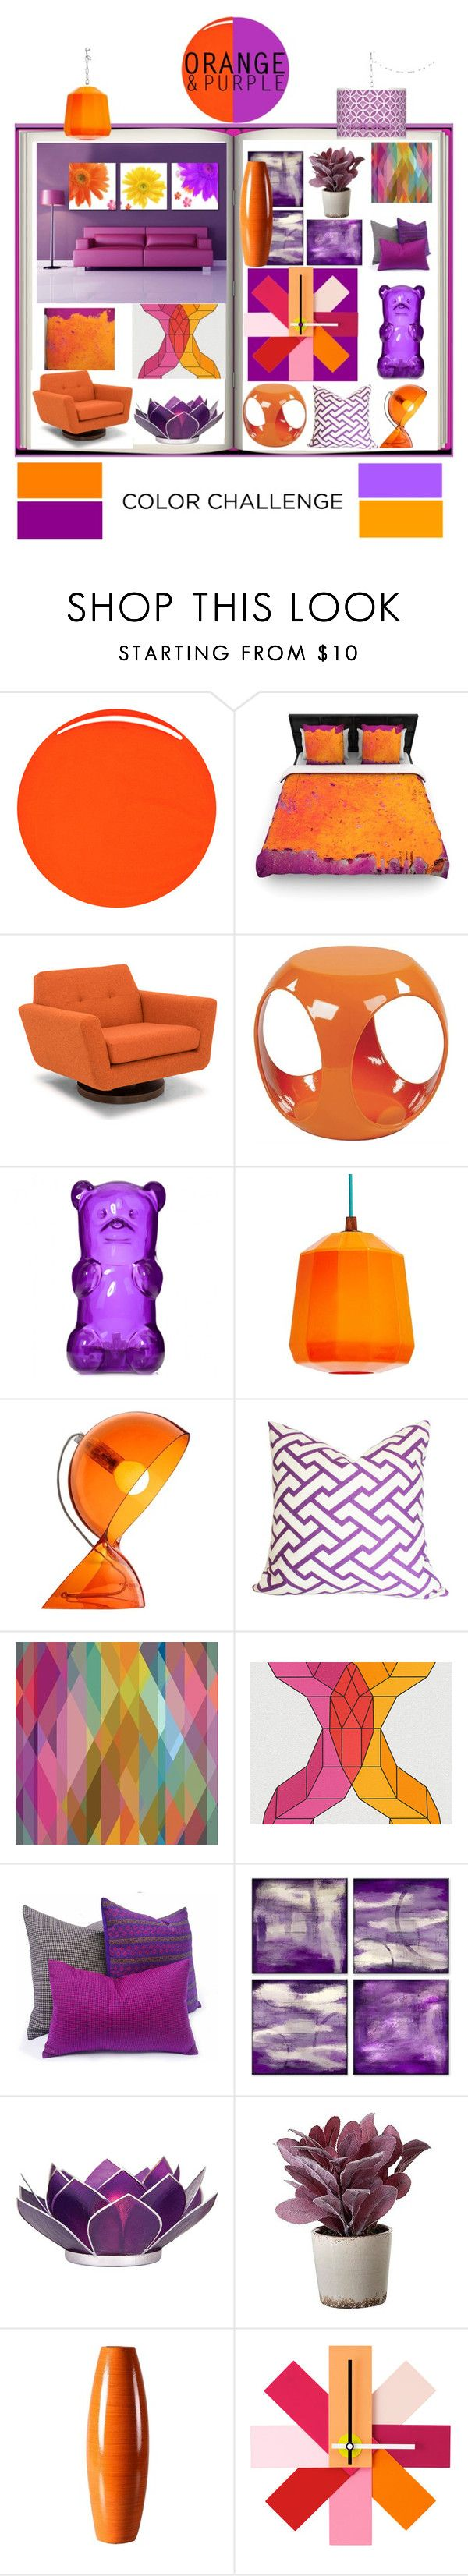 """""""Orange & Purple Color Challenges"""" by beleev ❤ liked on Polyvore featuring interior, interiors, interior design, home, home decor, interior decorating, RGB Cosmetics, Joybird Furniture, Office Star and Token"""